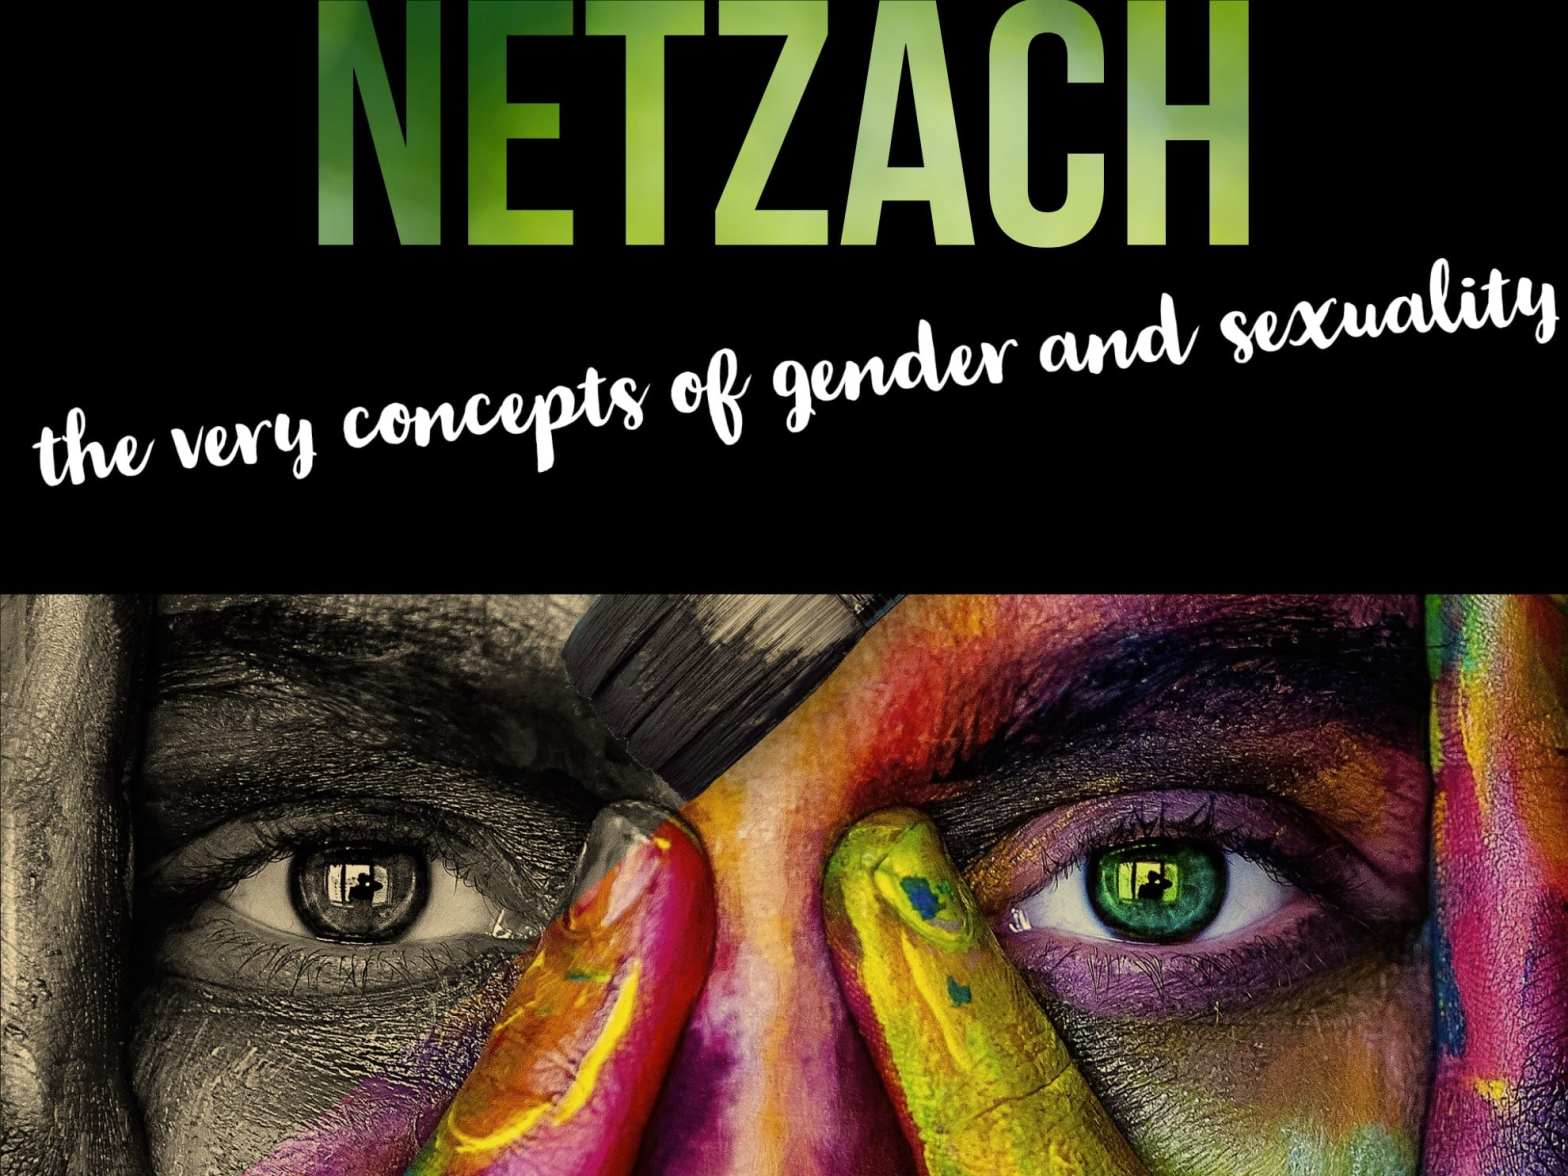 Netzach: The very concepts of gender and sexuality